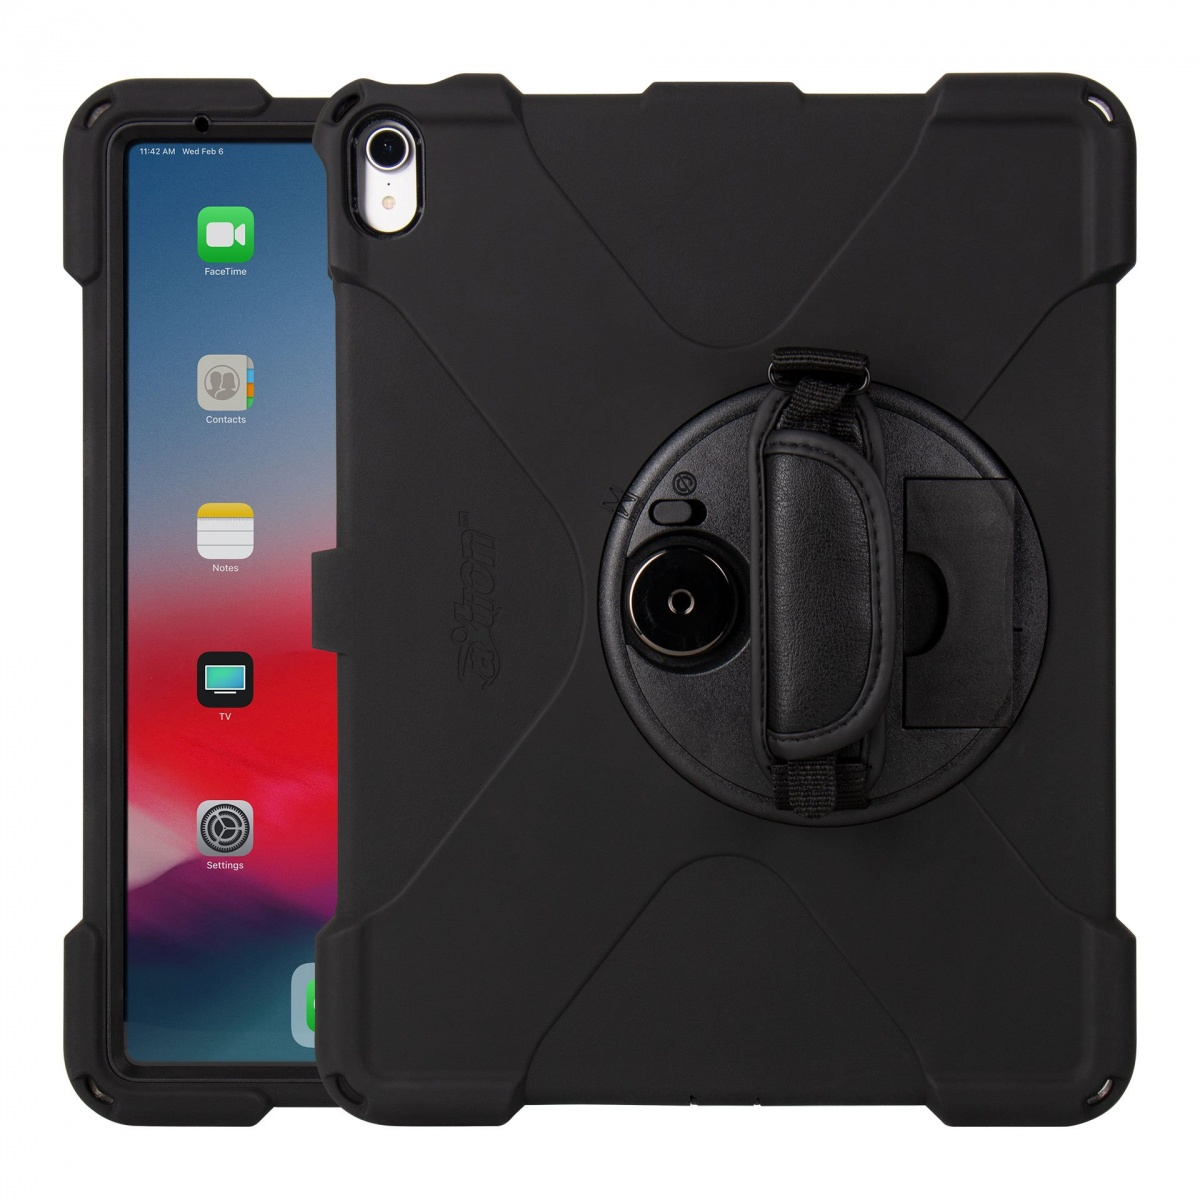 Built-in Screen Protector The Joy Factory MagConnect Carbon Fiber Wall//Counter Mount w//aXtion Bold MP Water-Resistant Rugged Shockproof Case for Surface Pro 7 Pro 6 Pro 4 Pro 5 MWM3004MP